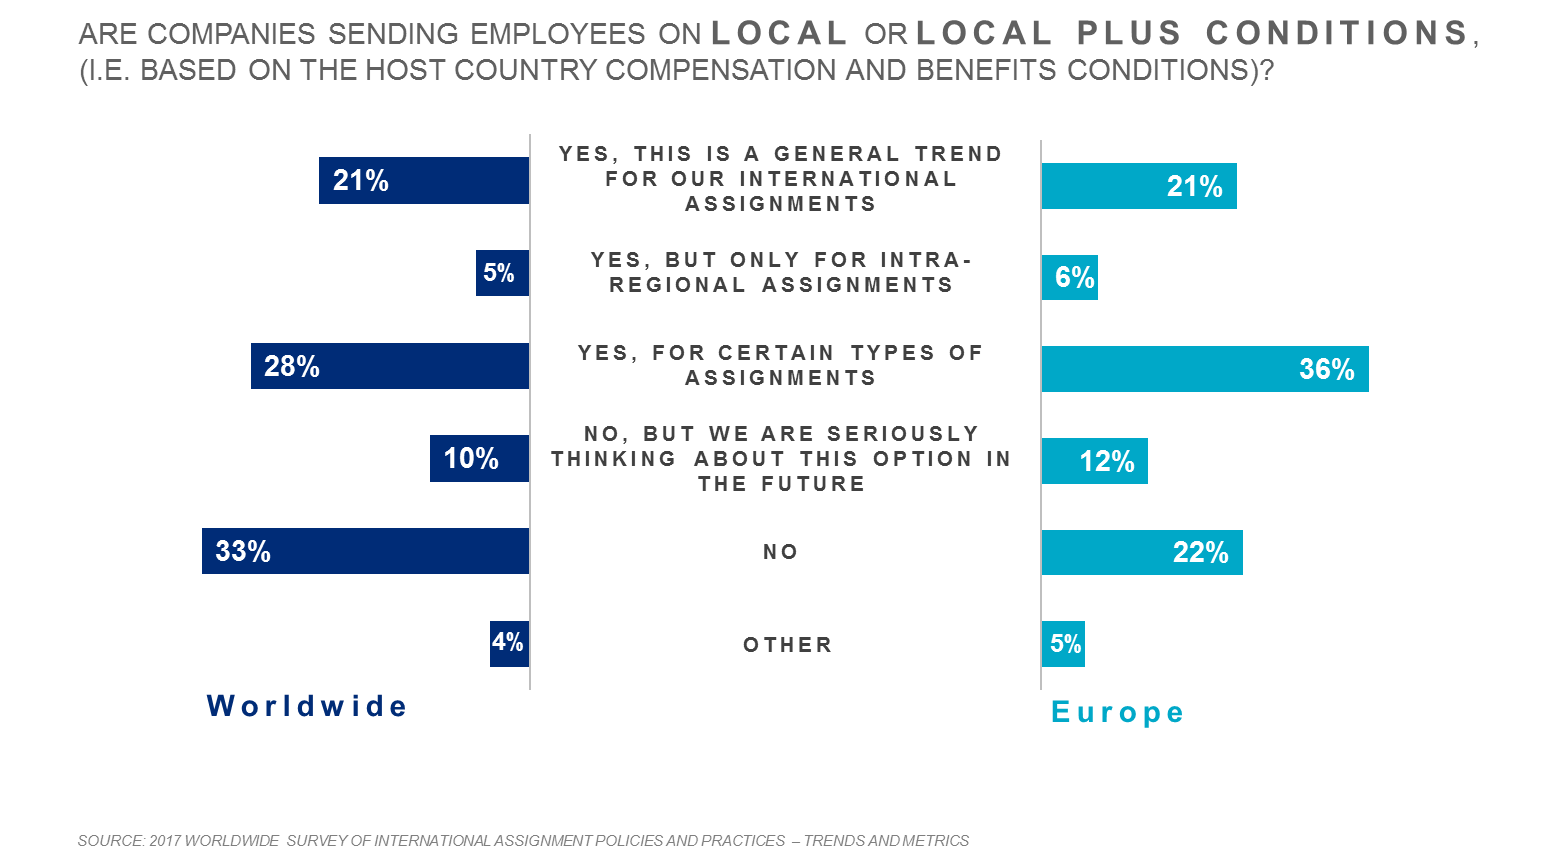 Are companies sending employees abroad on local or local-plus conditions - Mercer survey highlights